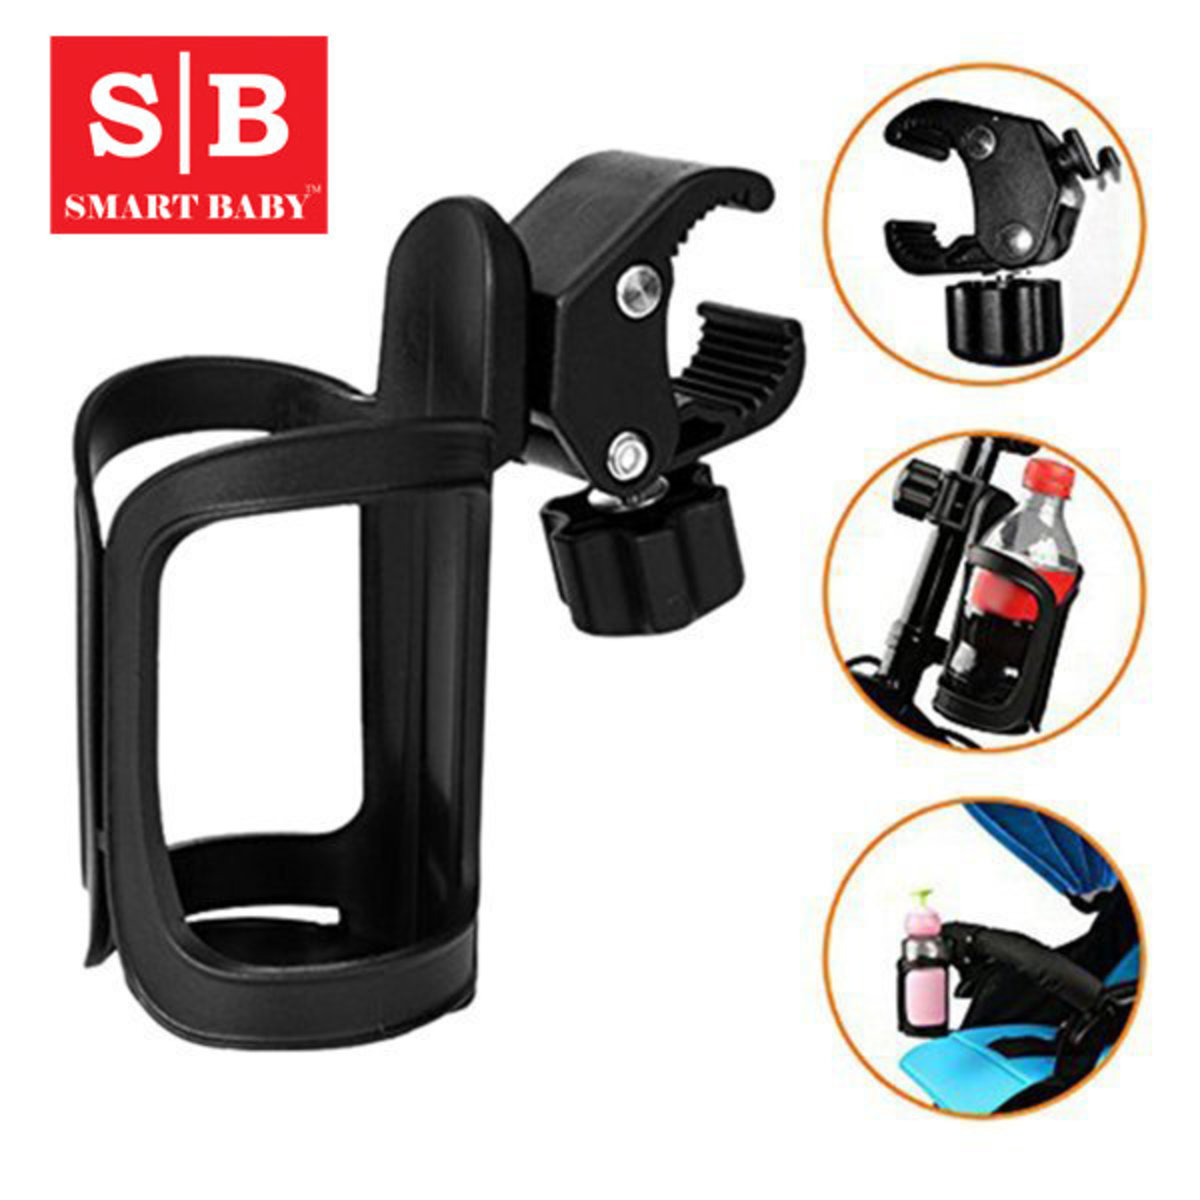 Stroller Cup Holder-Universal Model (For Bicycle / Scooter / Balance Bike)